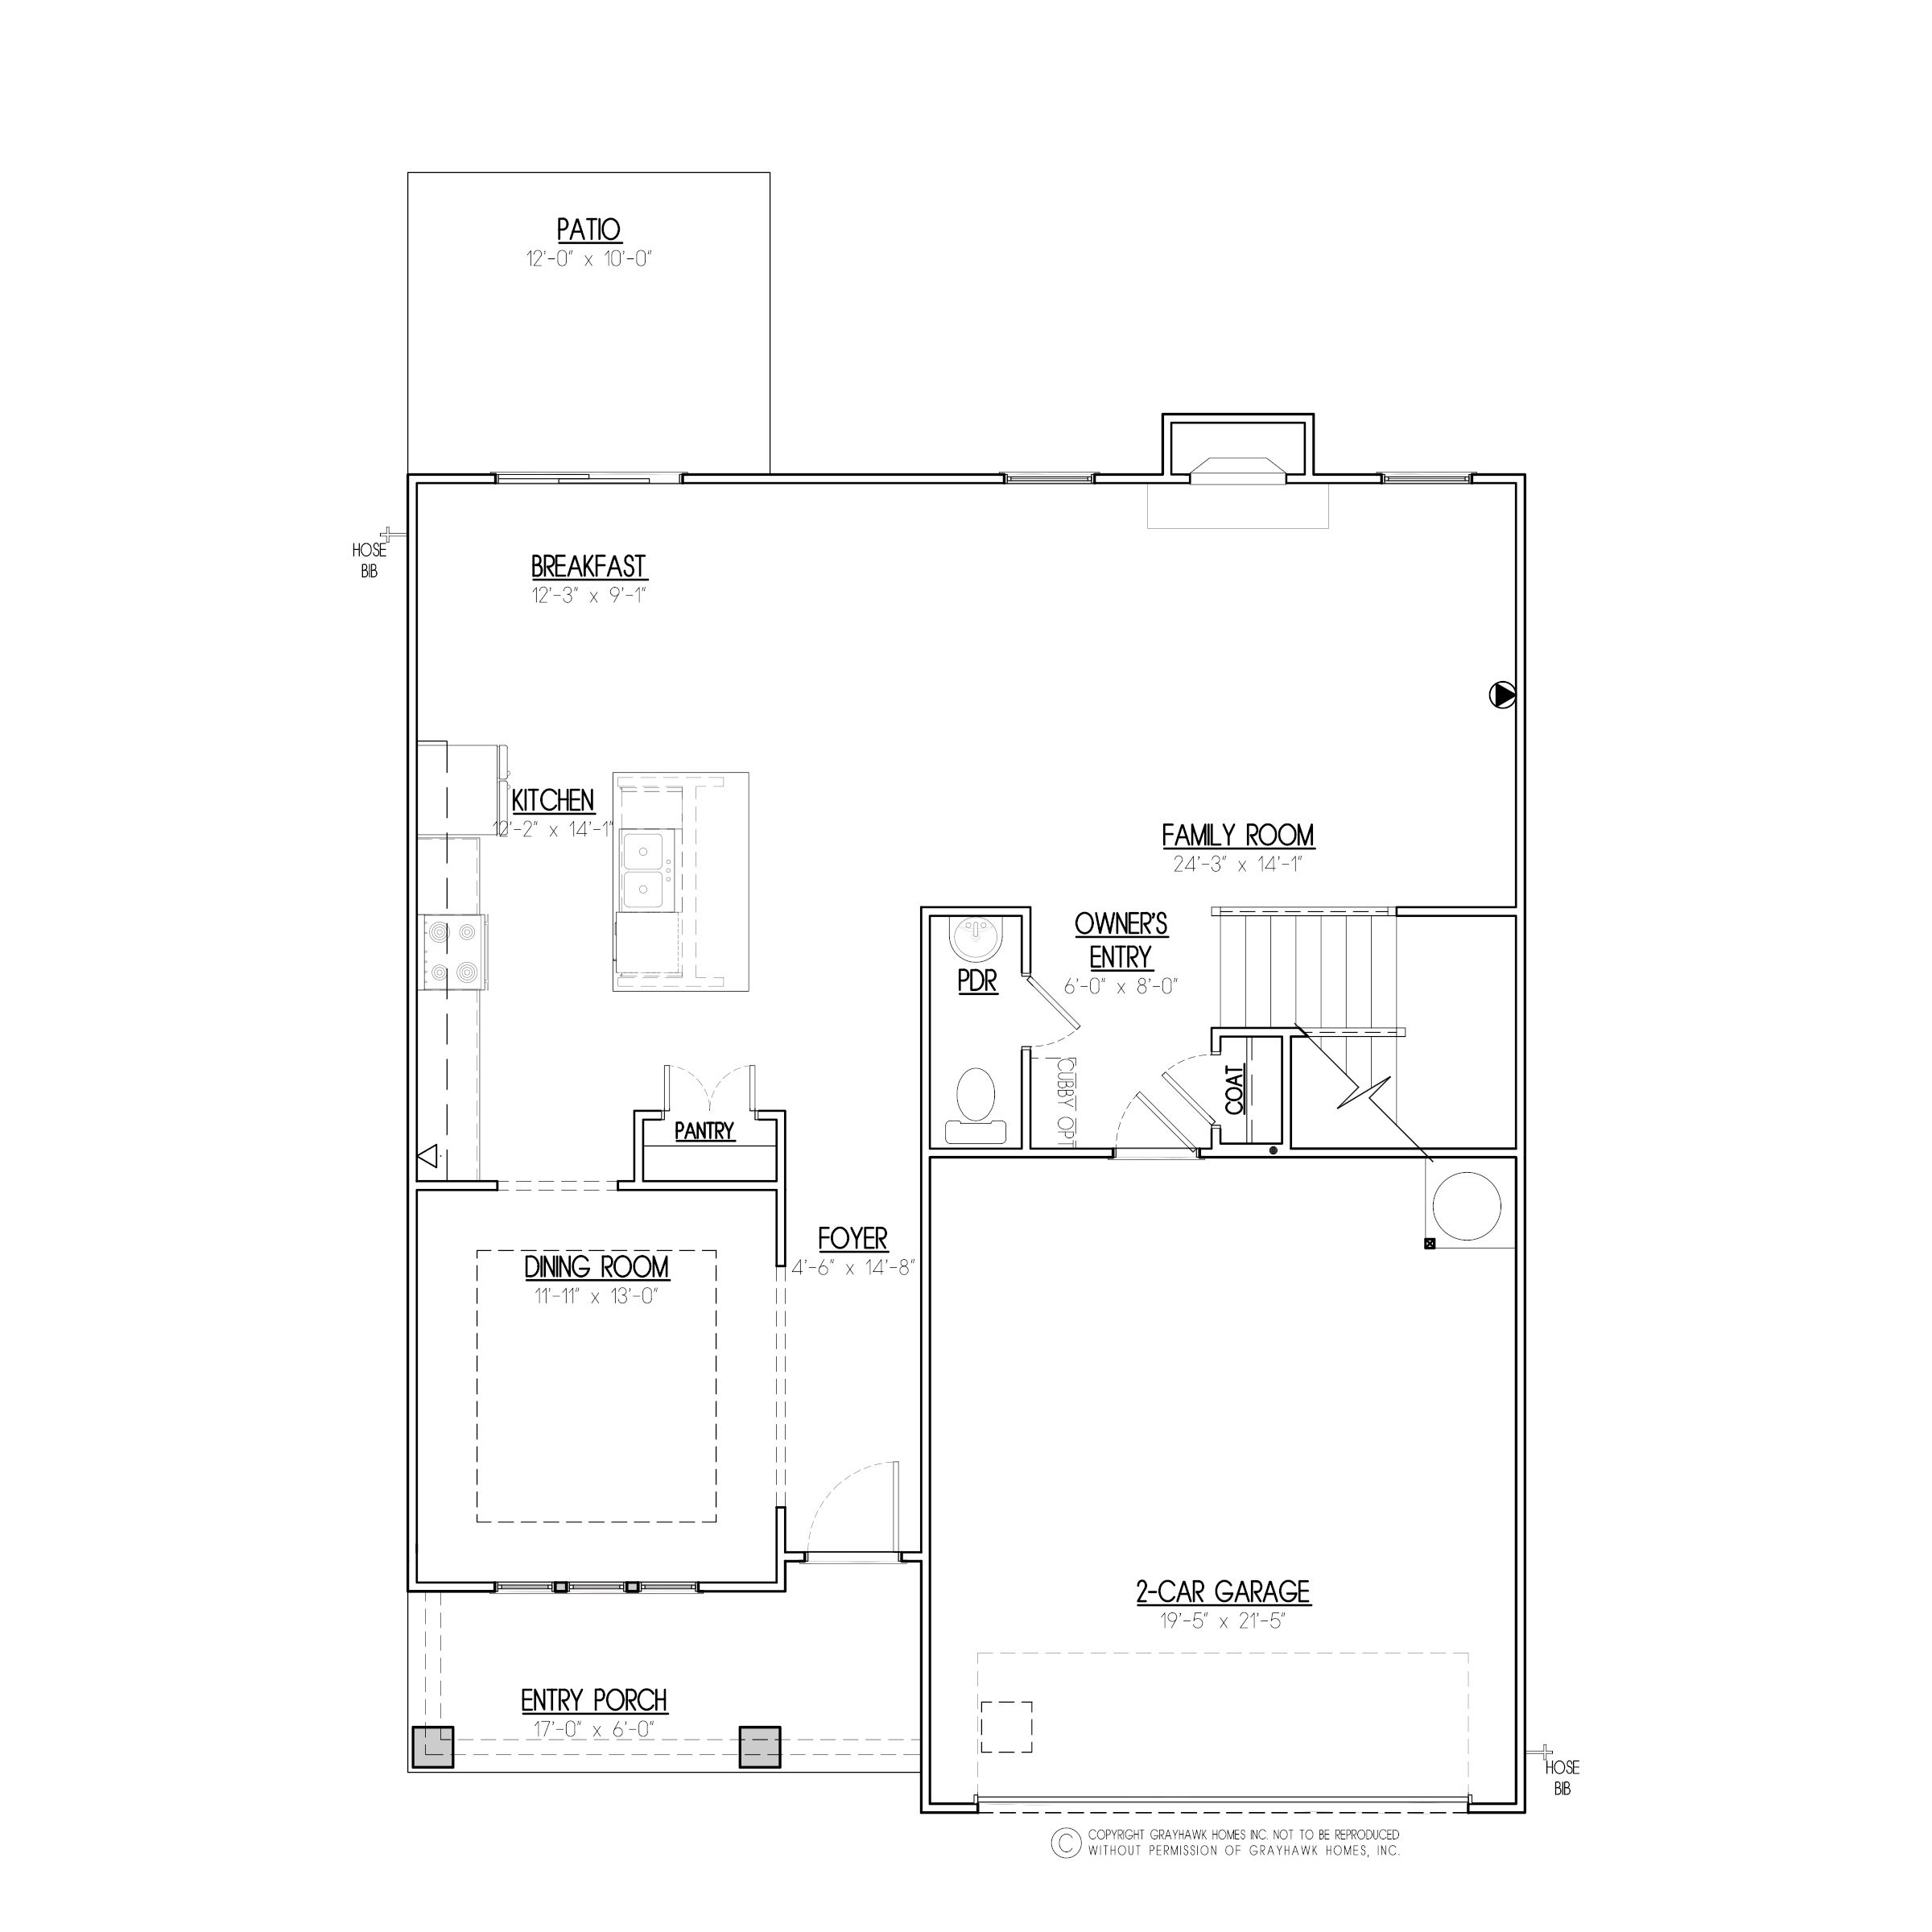 floorPlan.altTag